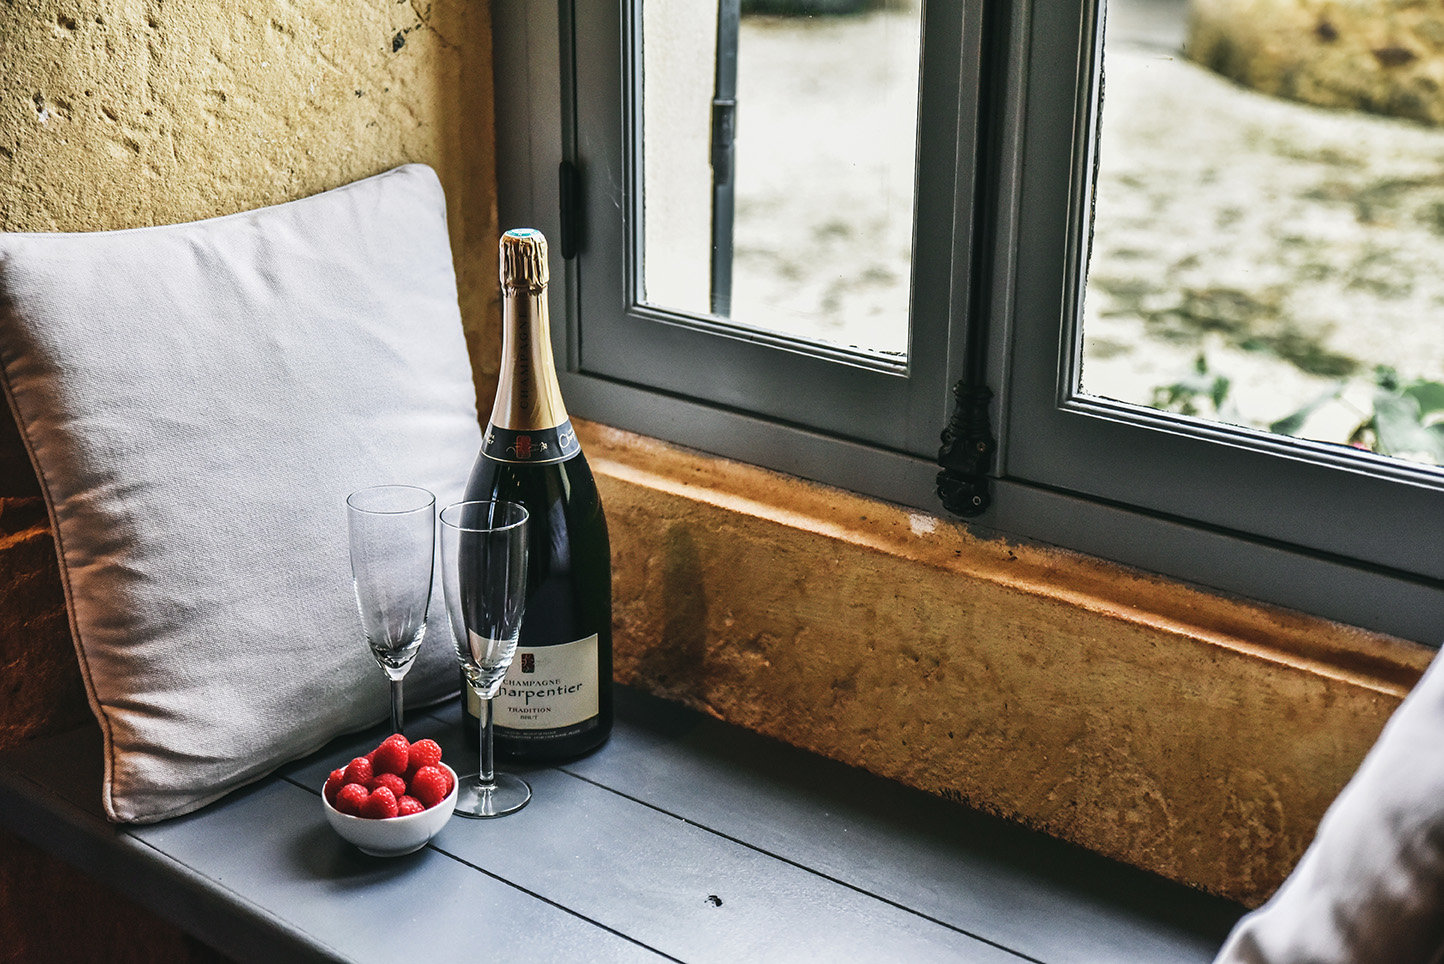 Champagne, glasses and raspberries on the window-seat in the kitchen of Le Mas, a 5-star holiday home in the Dordogne, France